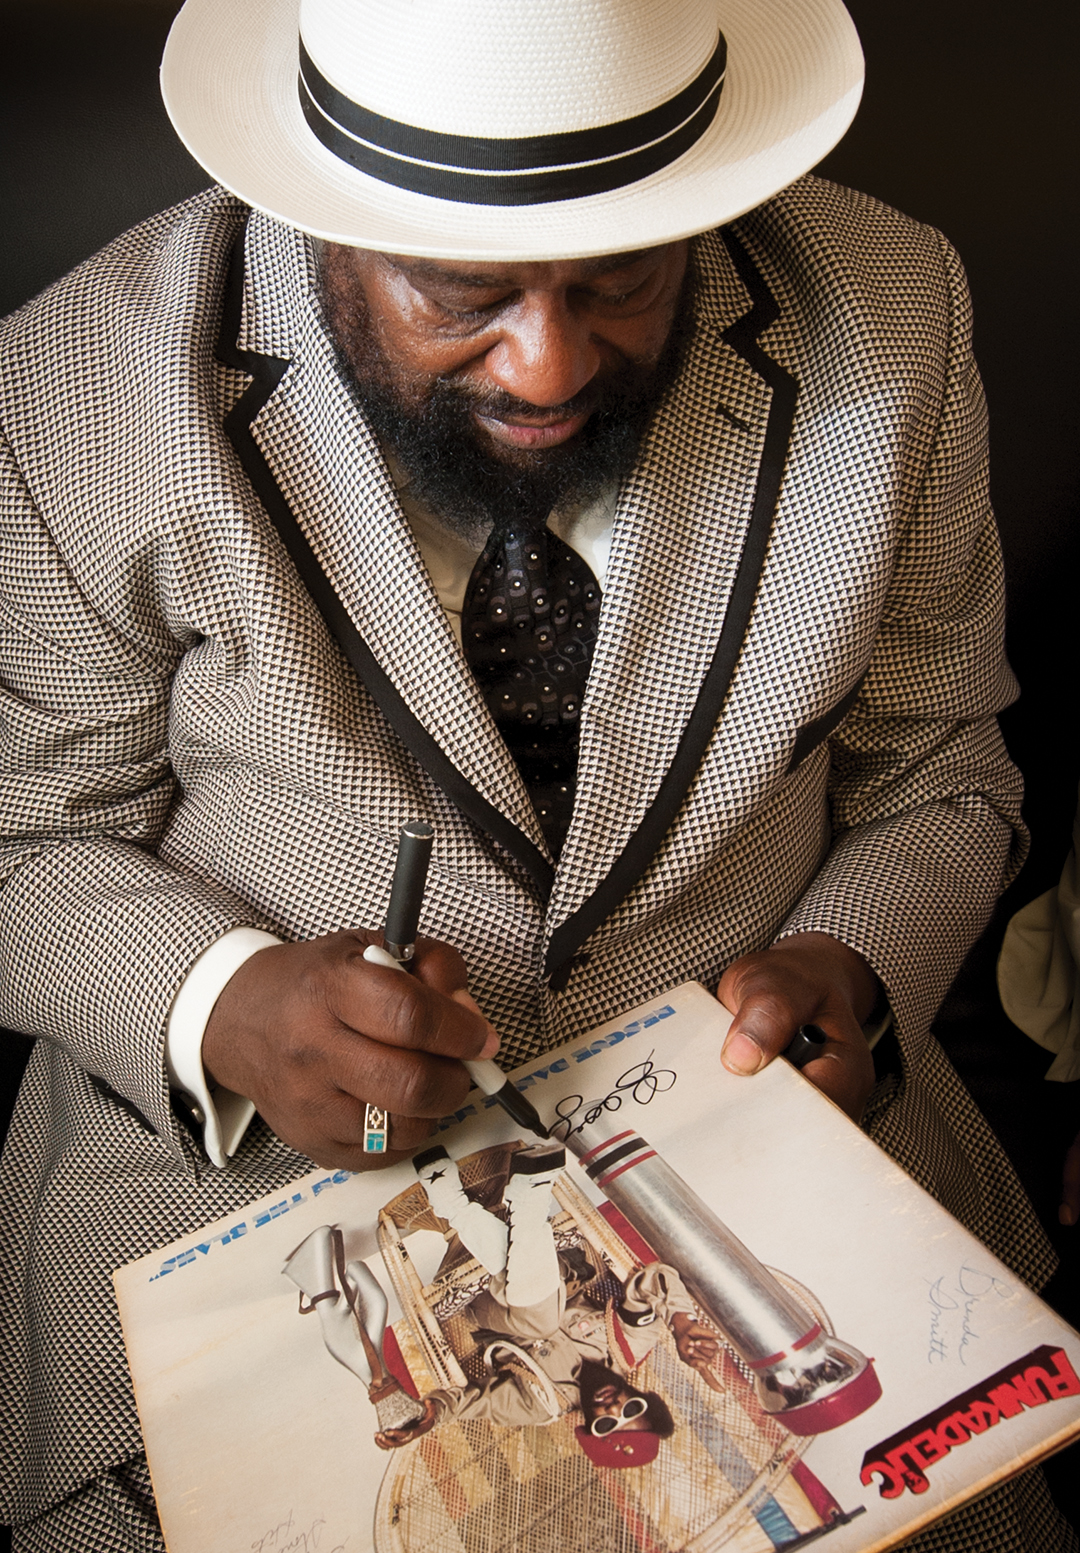 George Clinton signing one of his records